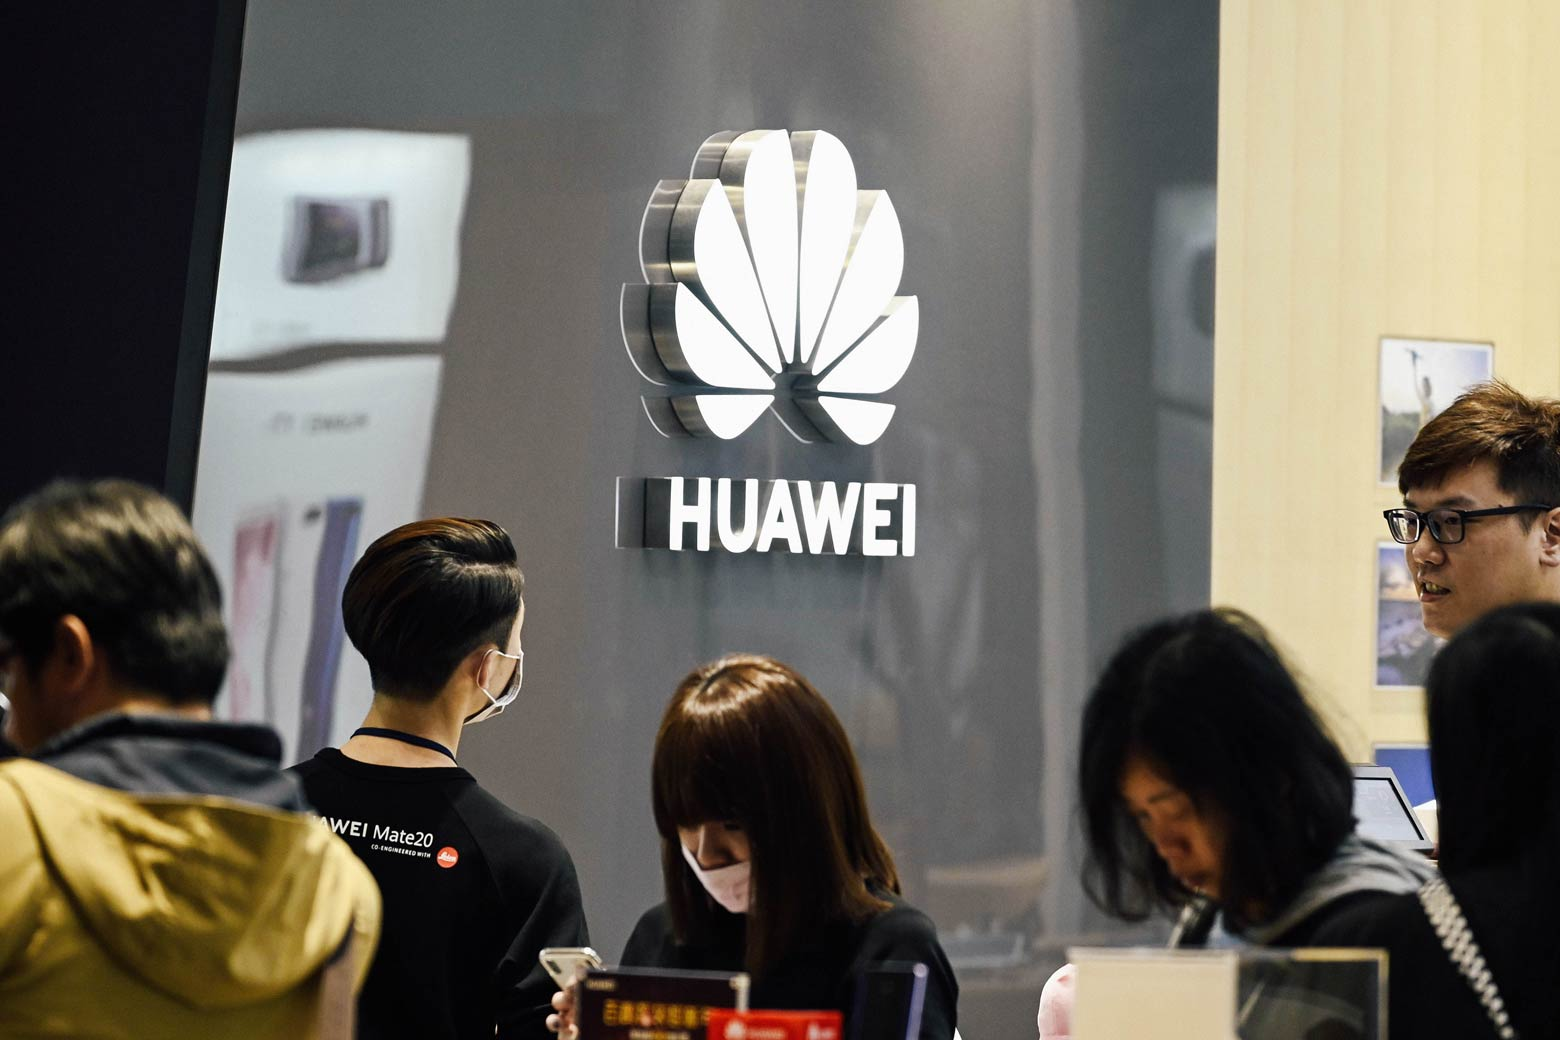 slate.com - Fred Kaplan - Trump Is Right About Huawei